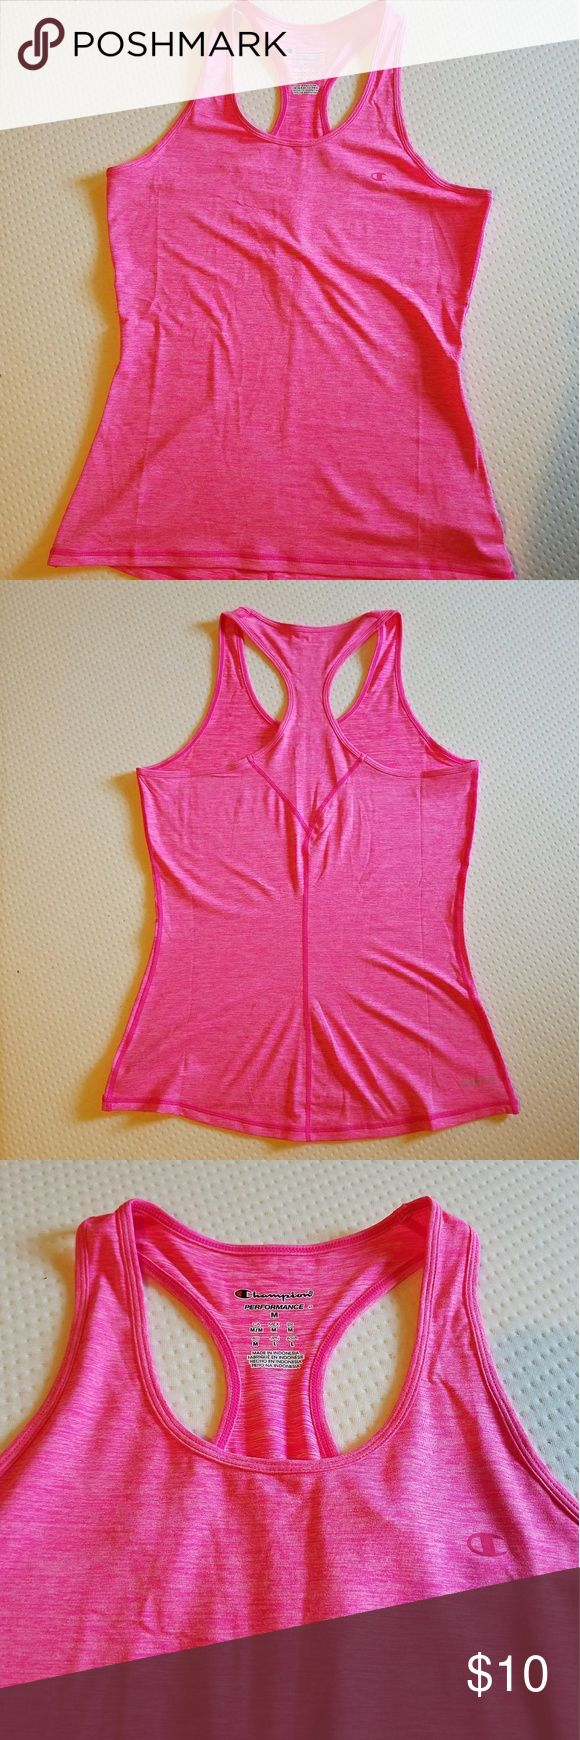 ☆2 for $15☆ Champion Workout Tank Hot pink workout tank. Never worn! Size medium. Champion Tops Tank Tops